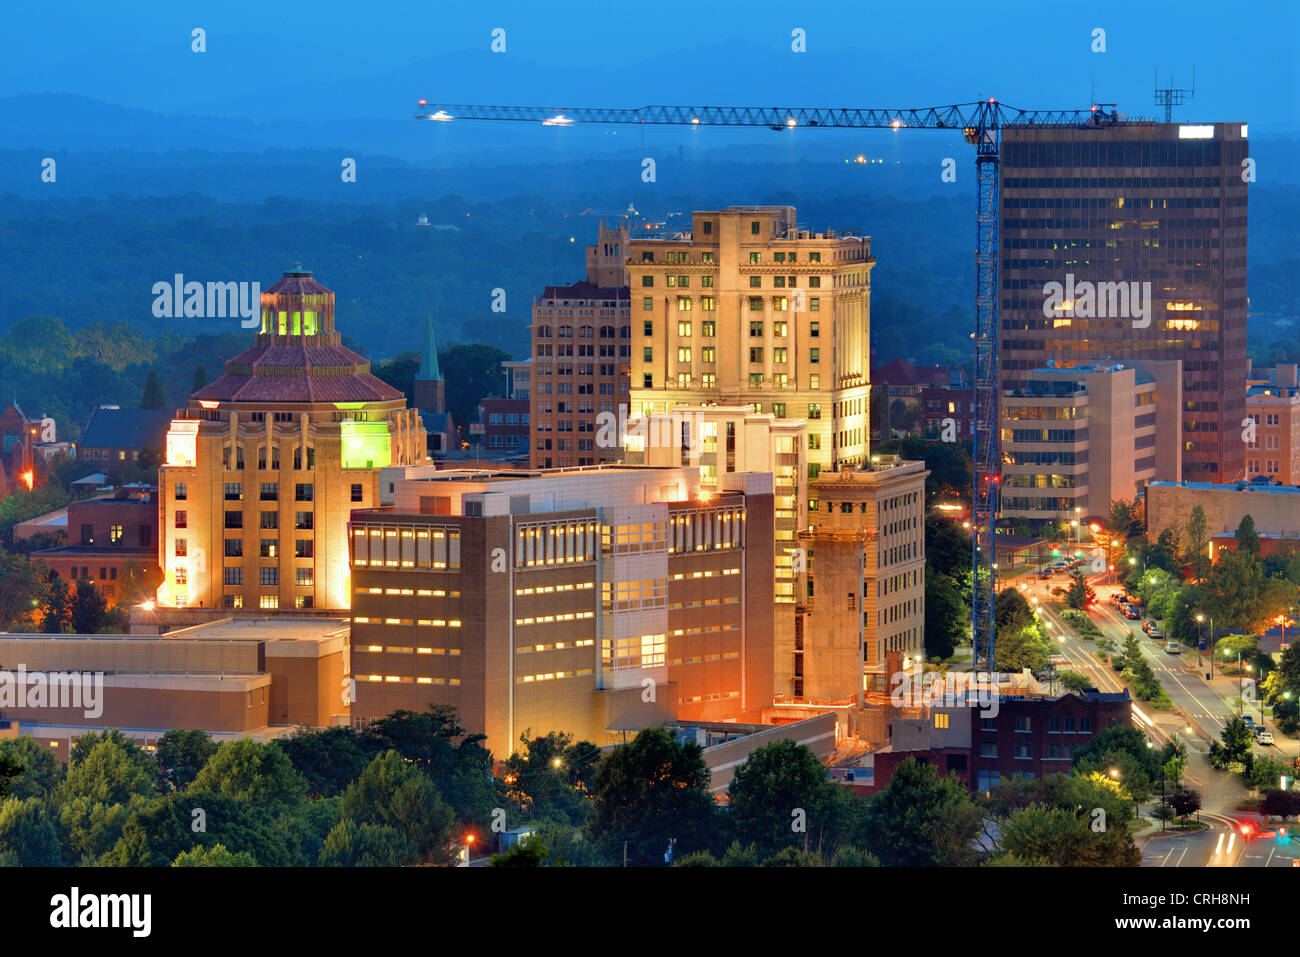 Downtown Asheville, North Carolina's city hall and courthouse building amoung other notable structures. - Stock Image